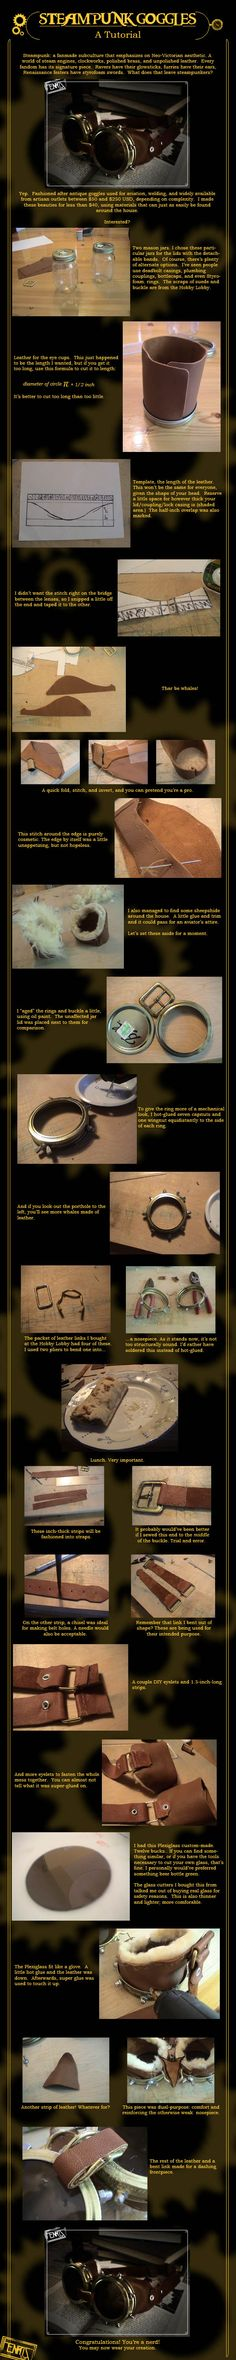 creating steampunk goggles tutorial: pretty sweet. Now I wonder if I could make these without leather